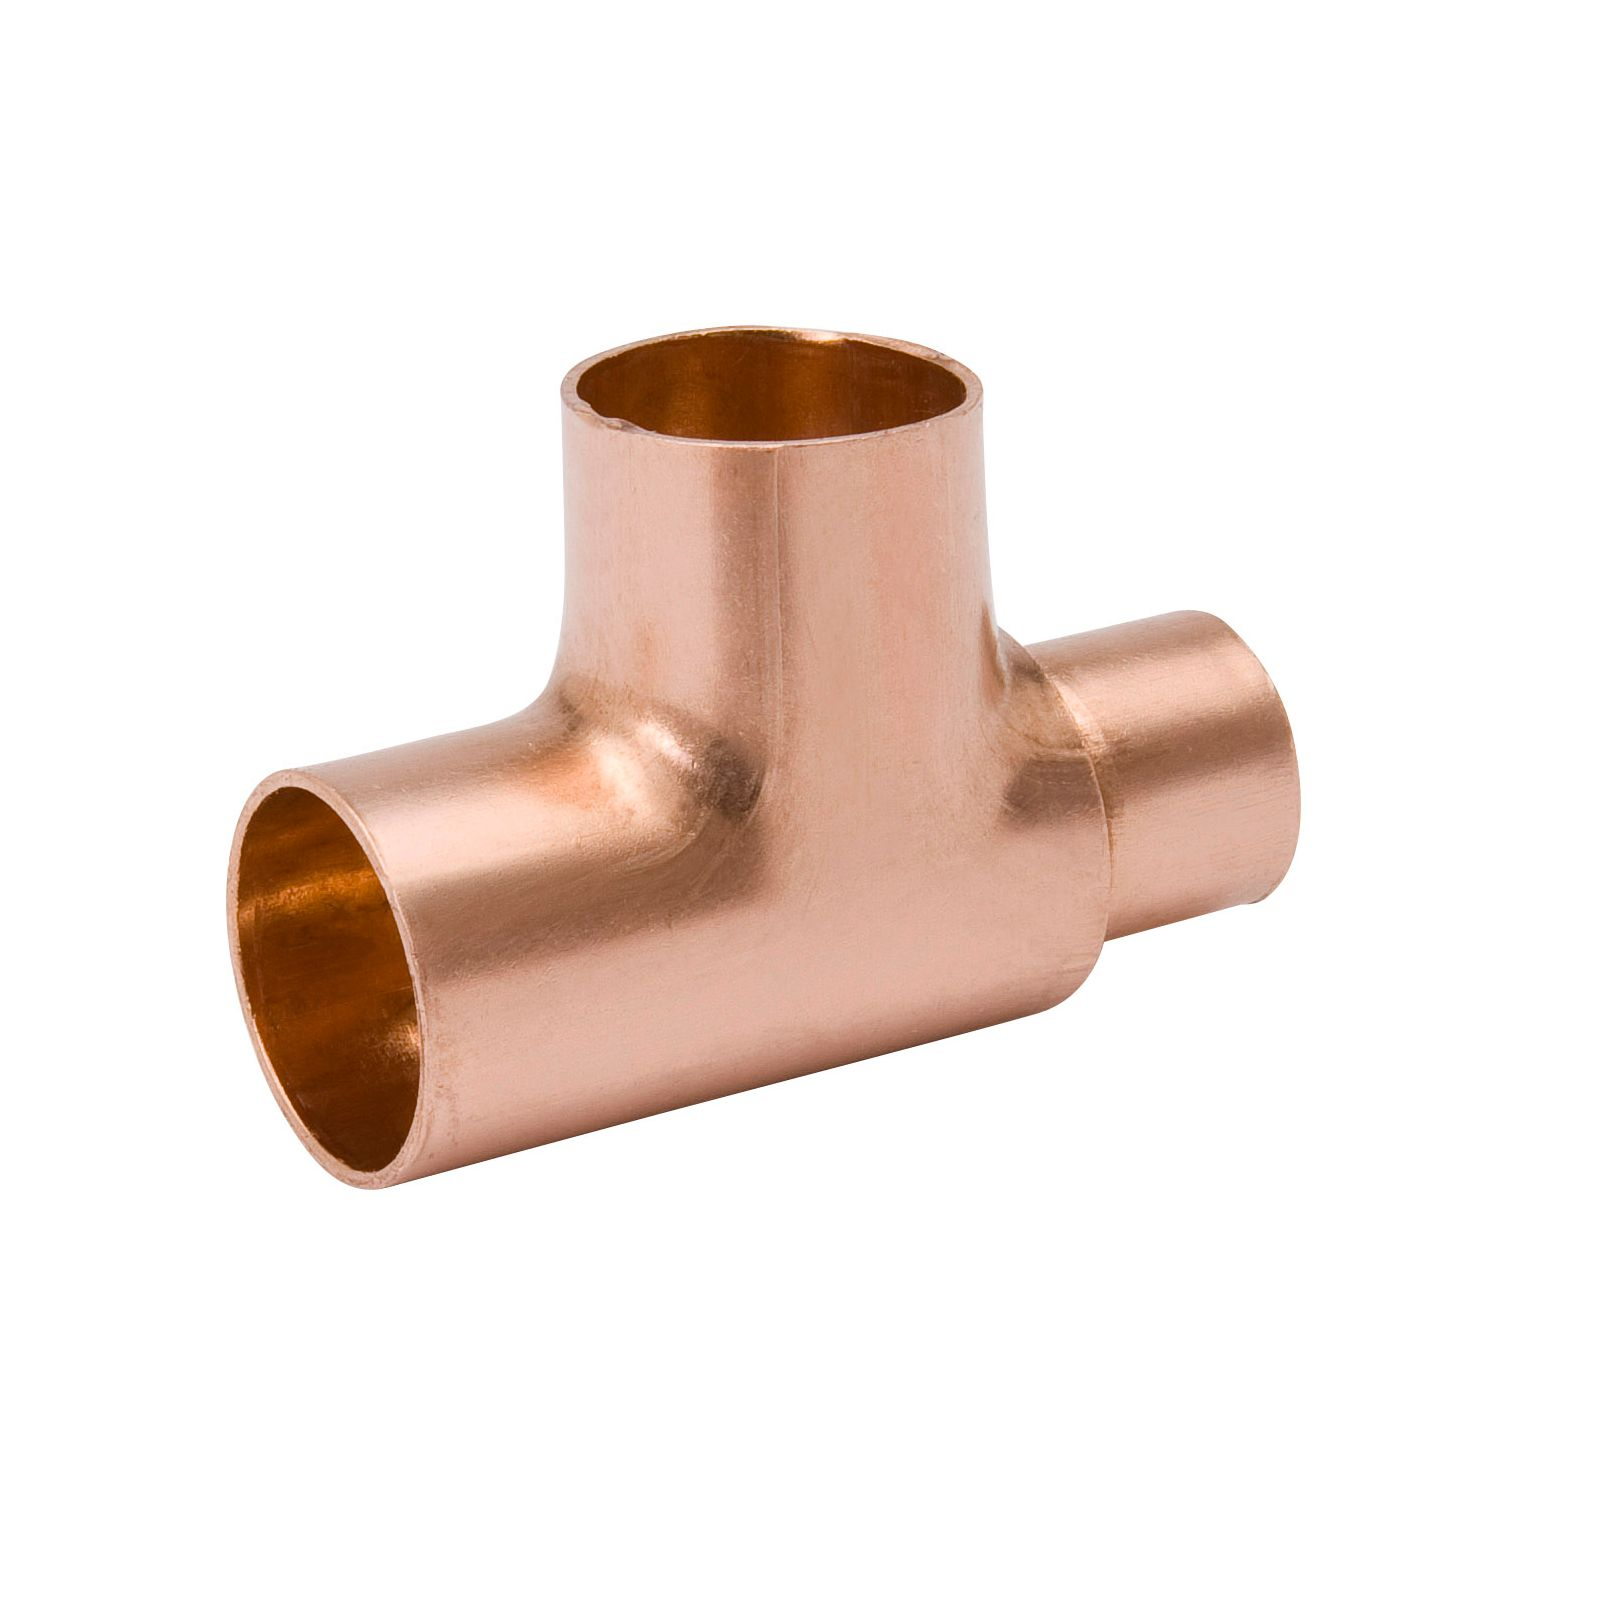 "Streamline W 04002 - Copper Fittings - Tee, Reducing, C x C x C, 1/2""O.D. x 1/2""O.D. x 3/8""O.D."